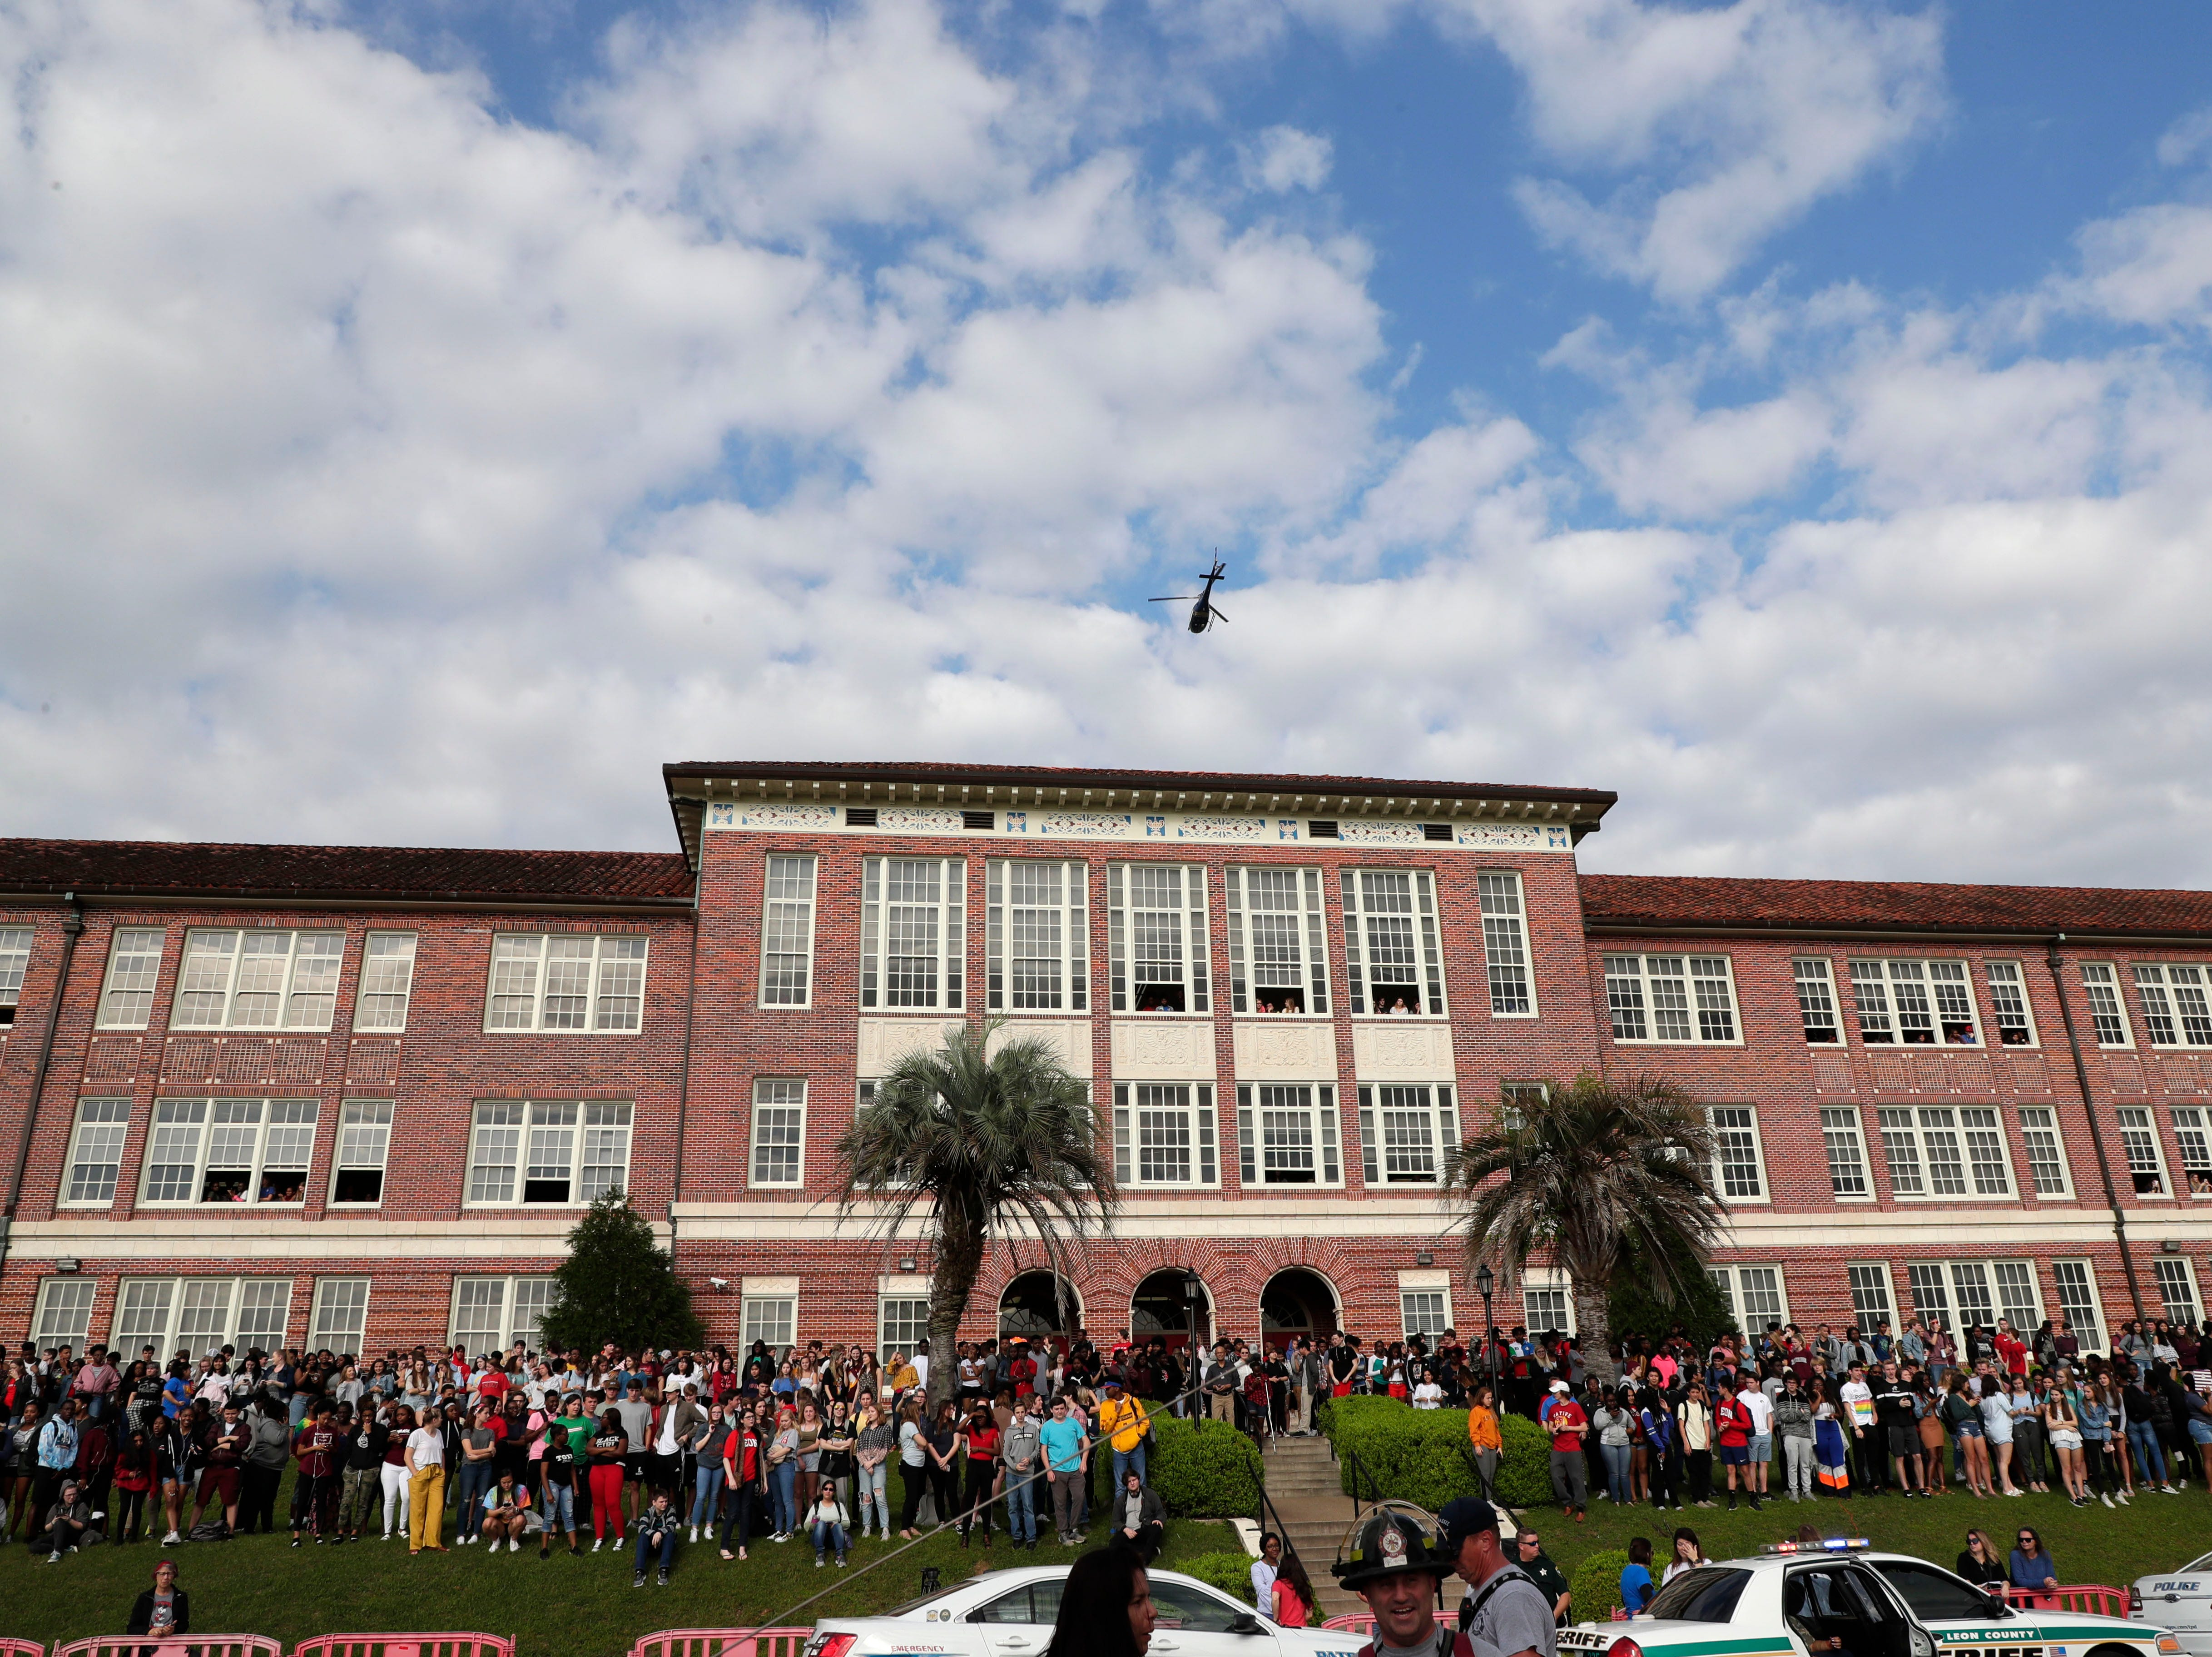 A helicopter leaves Leon High School as students watch as Leon High School partners with the county safety officials to give a simulation on the consequences of drunk driving before the students leave for spring break Friday, March 15, 2019.